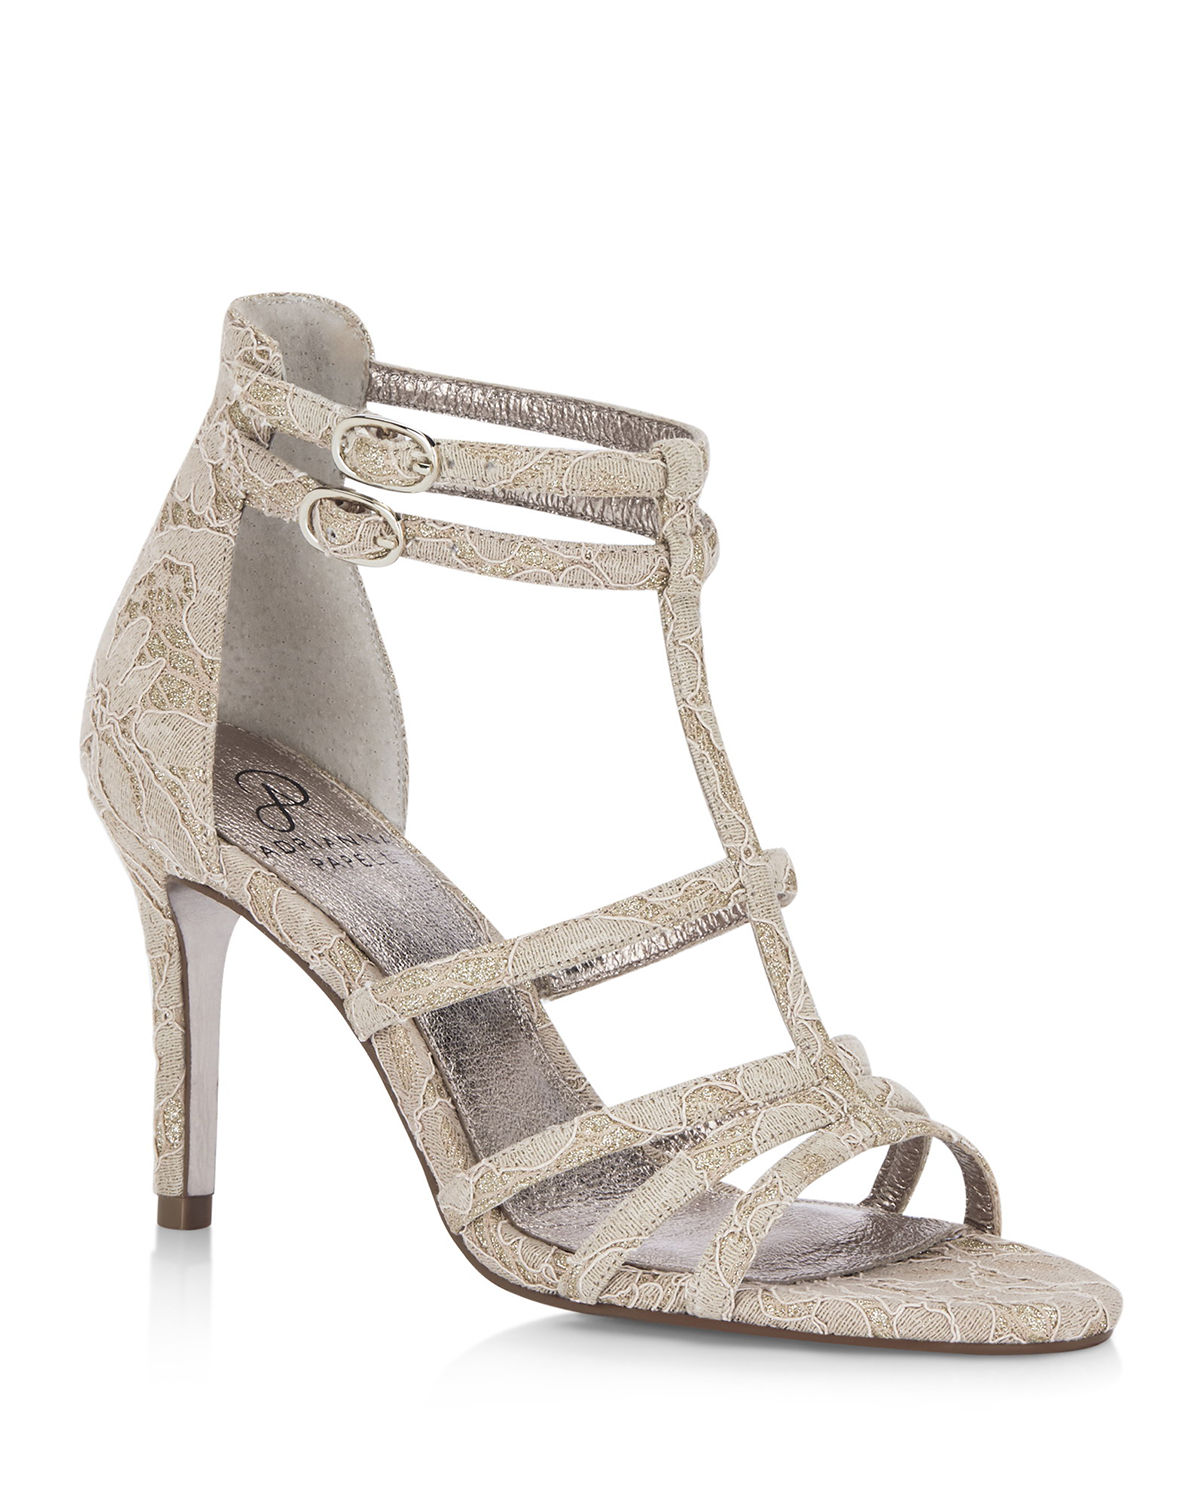 Adrianna Papell Sandals ADARA LACE T-STRAP EVENING SANDALS